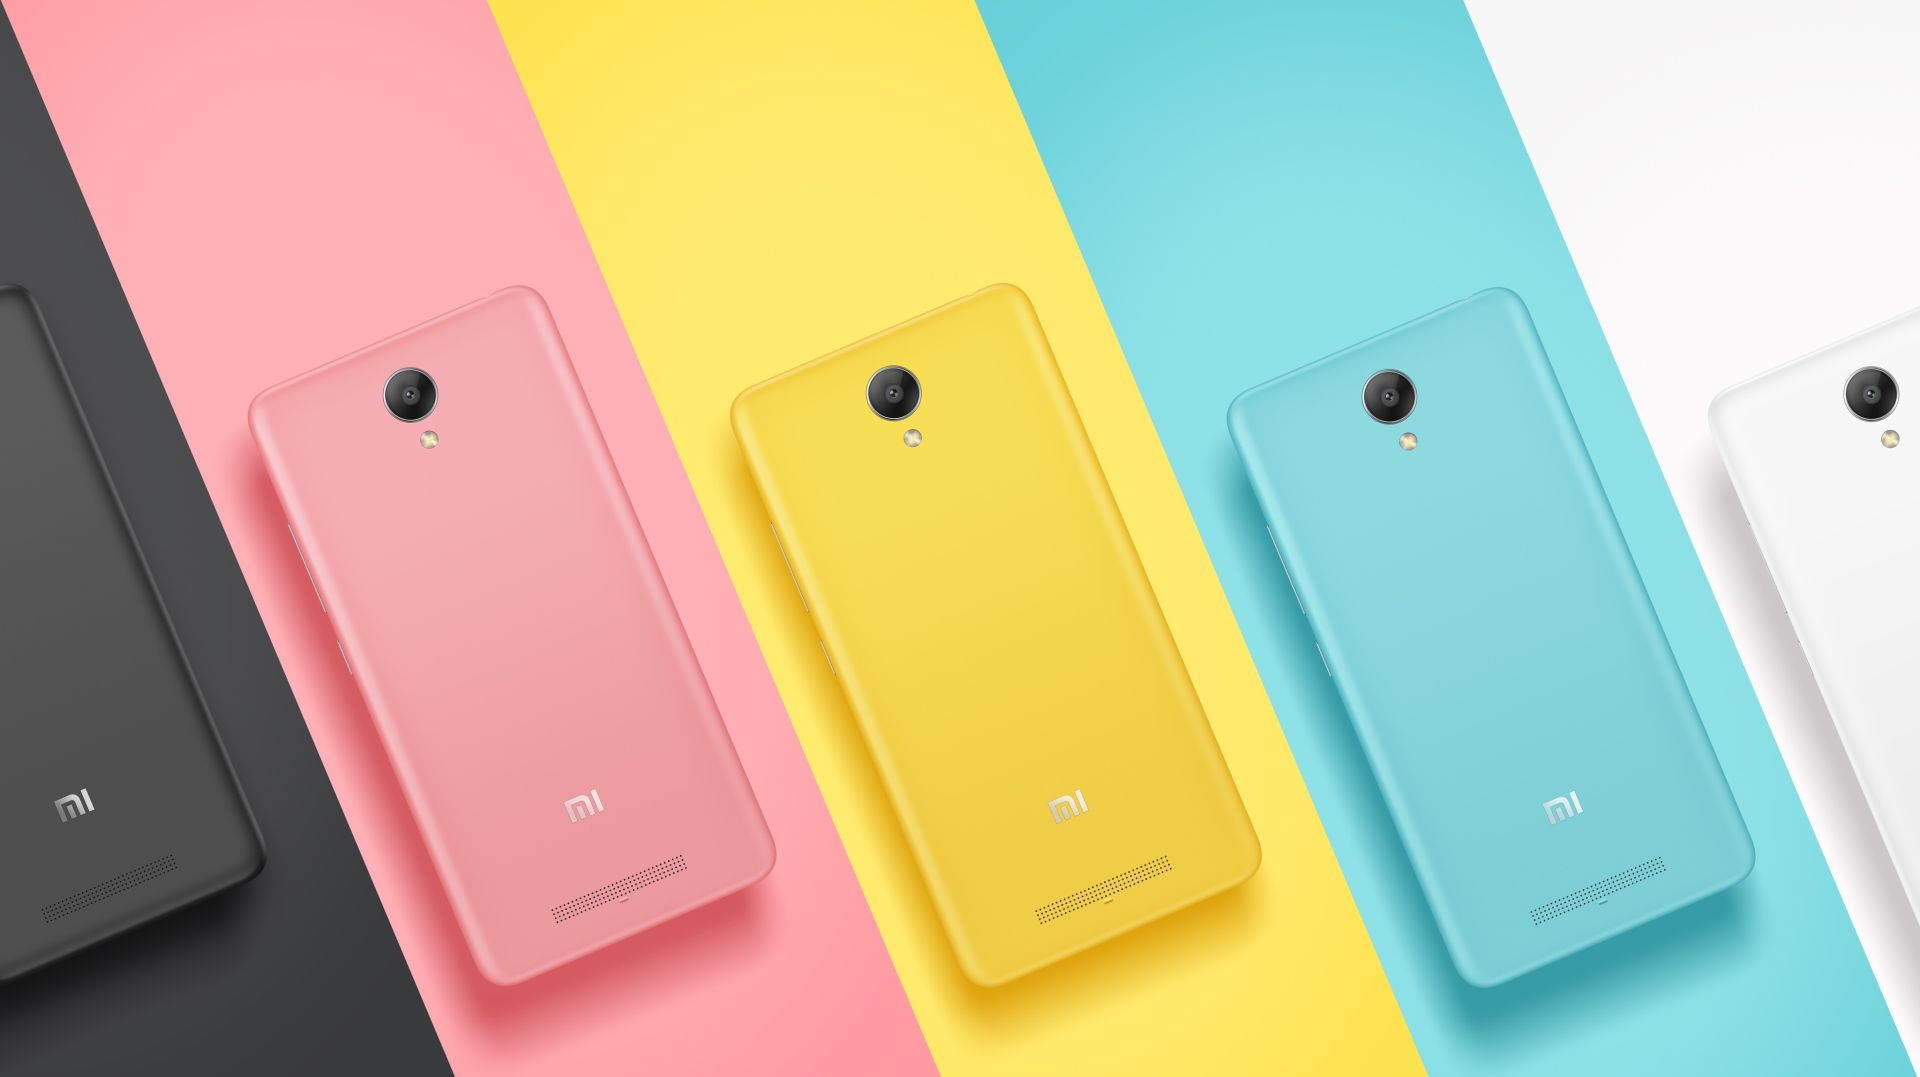 redmi-note-2-b